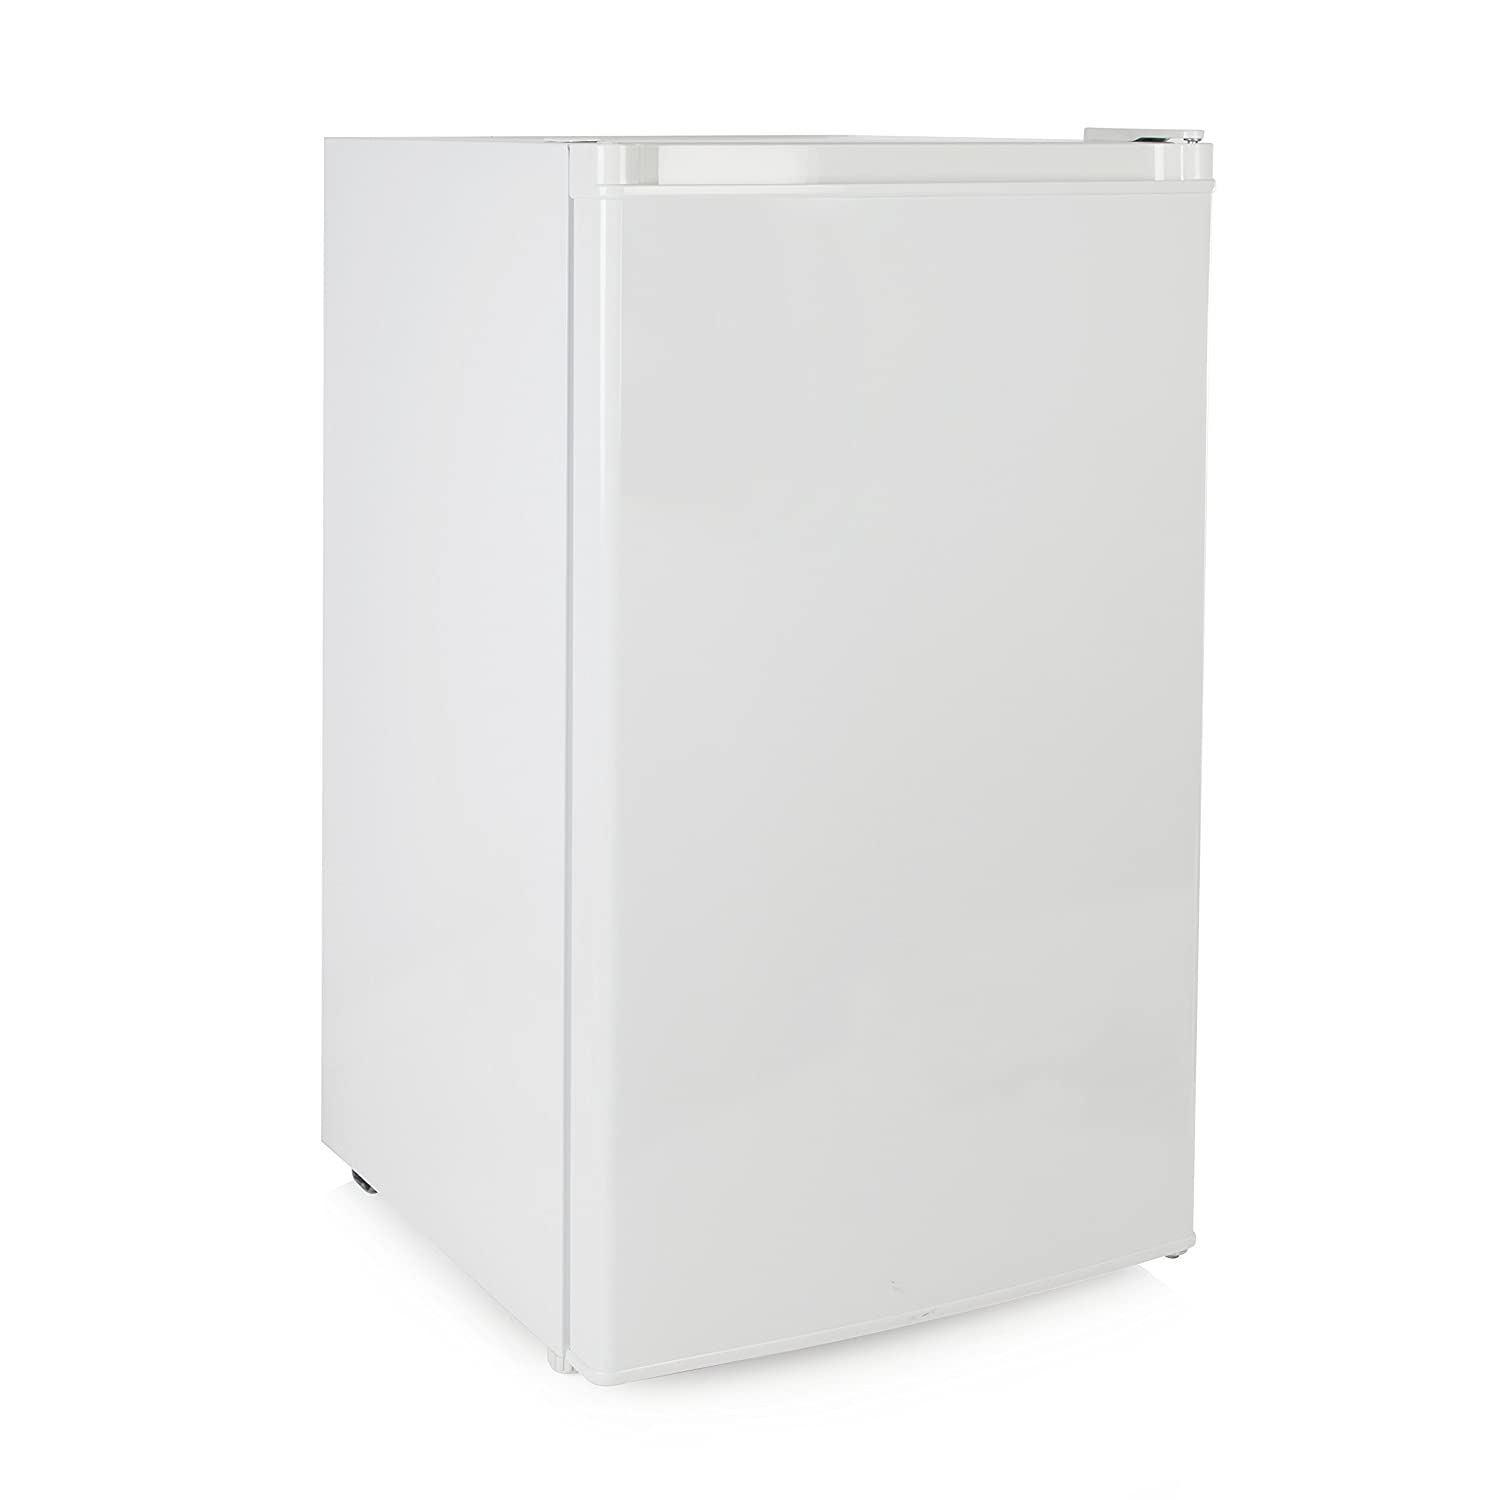 Signature S31002 Under Counter Freezer 65 Litre, White [Energy Class A+]